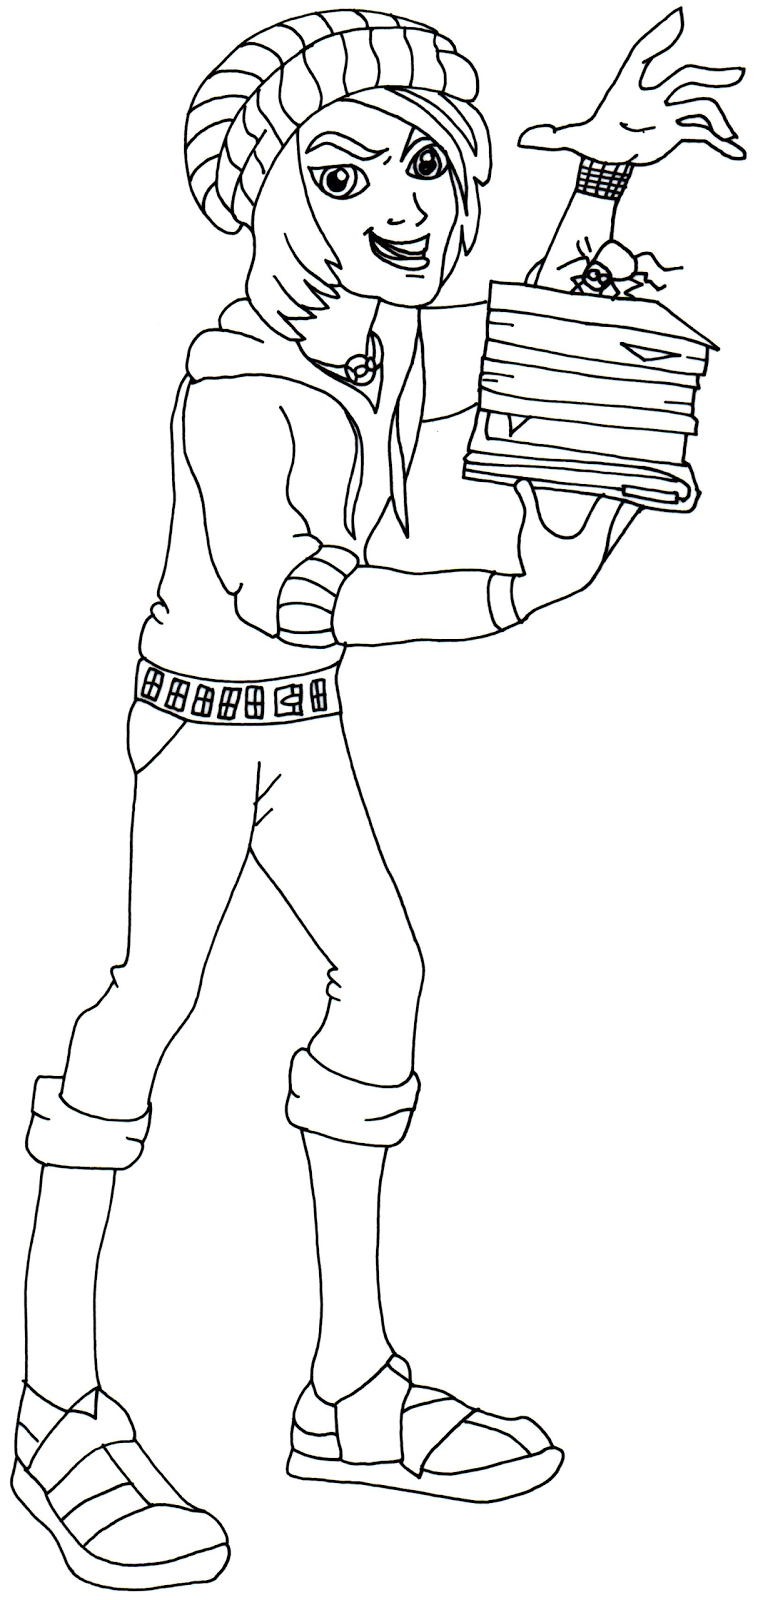 free printable monster high coloring page for invisi billy in his scaremester outfit - Scary Monster High Coloring Pages